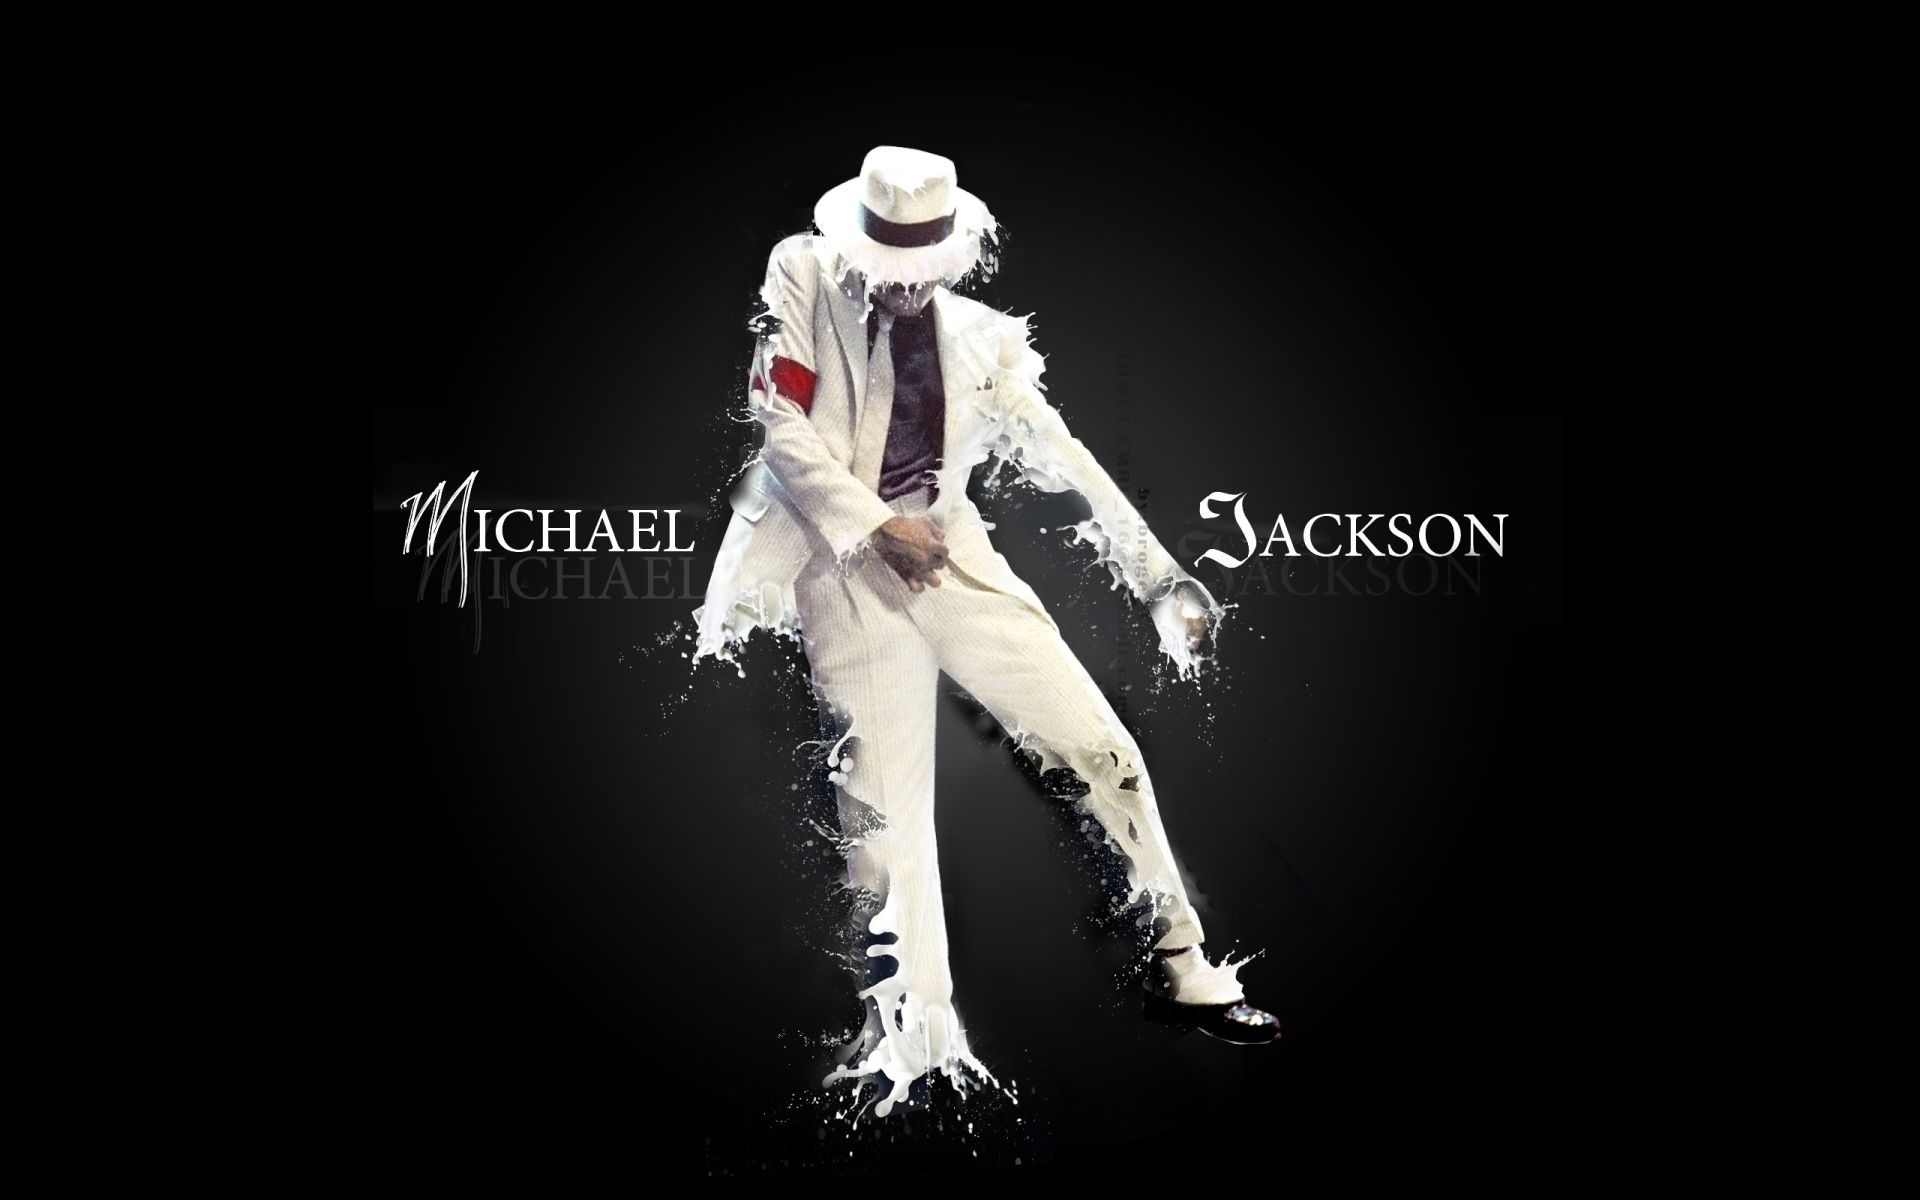 Dance music wallpaper michael jackson dance music for Jackson galaxy music